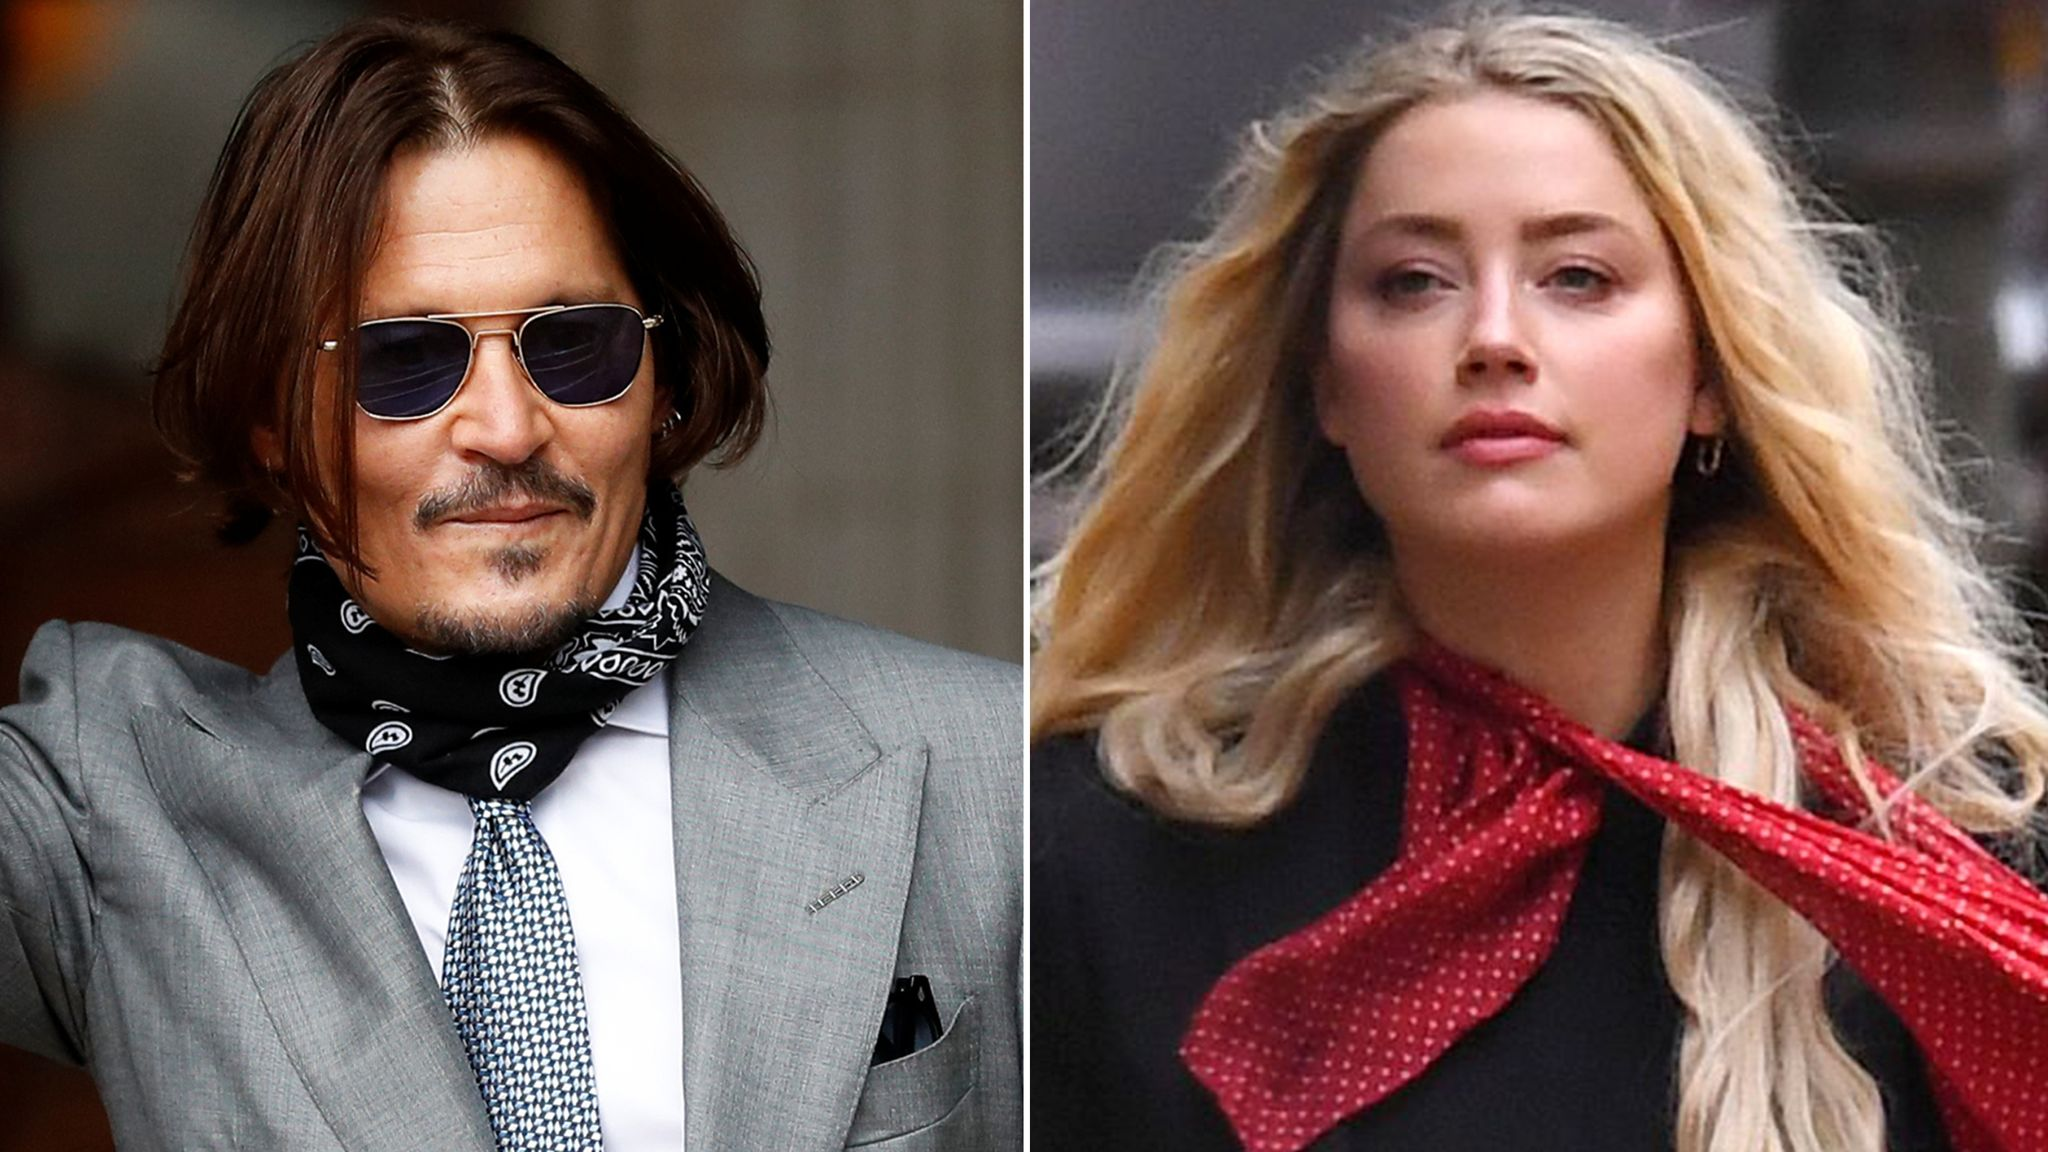 Johnny Depp and Amber Heard Law Battle